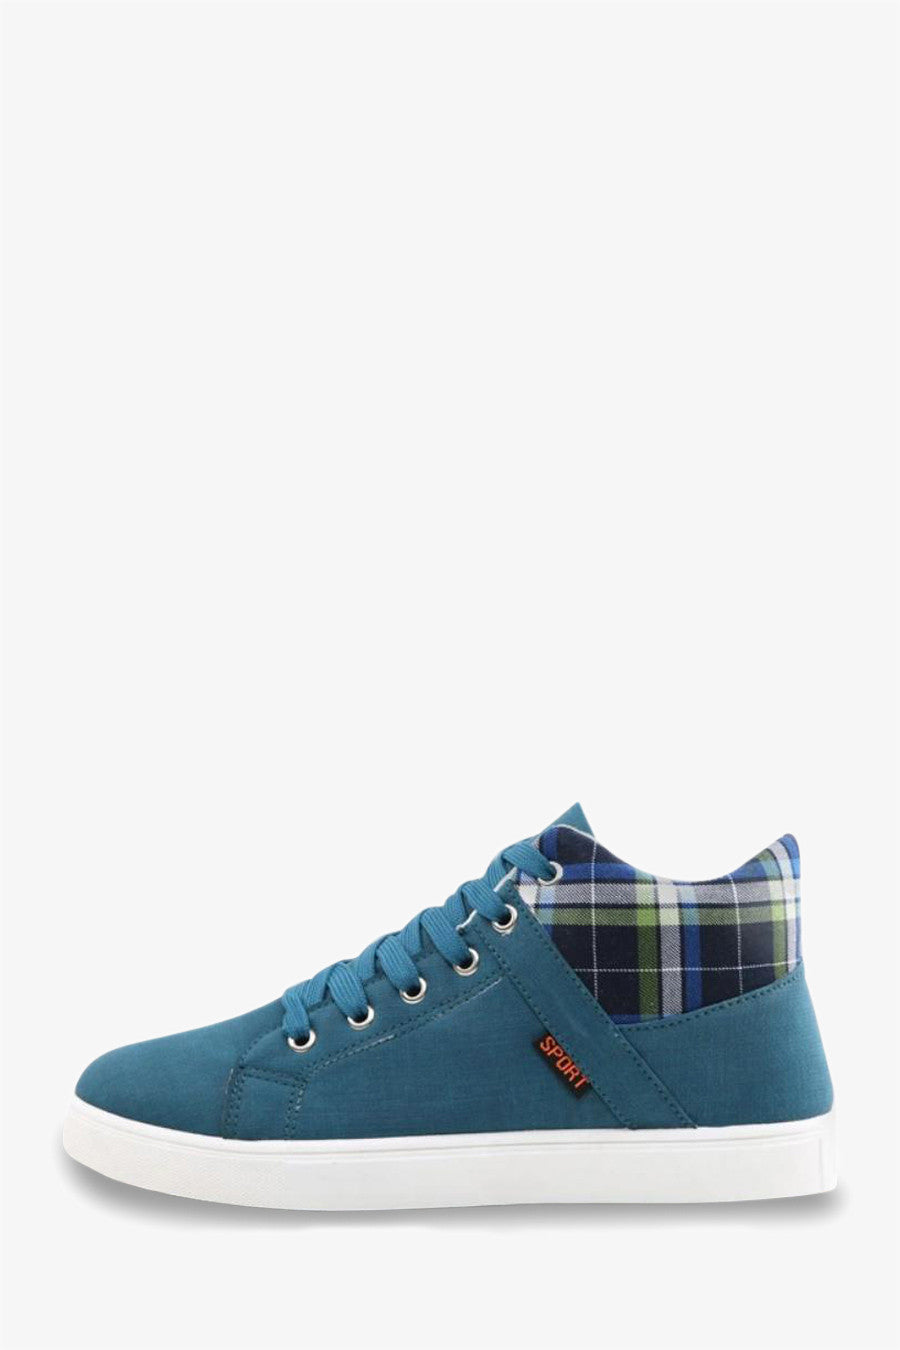 Cool High Top Sneakers In Blue